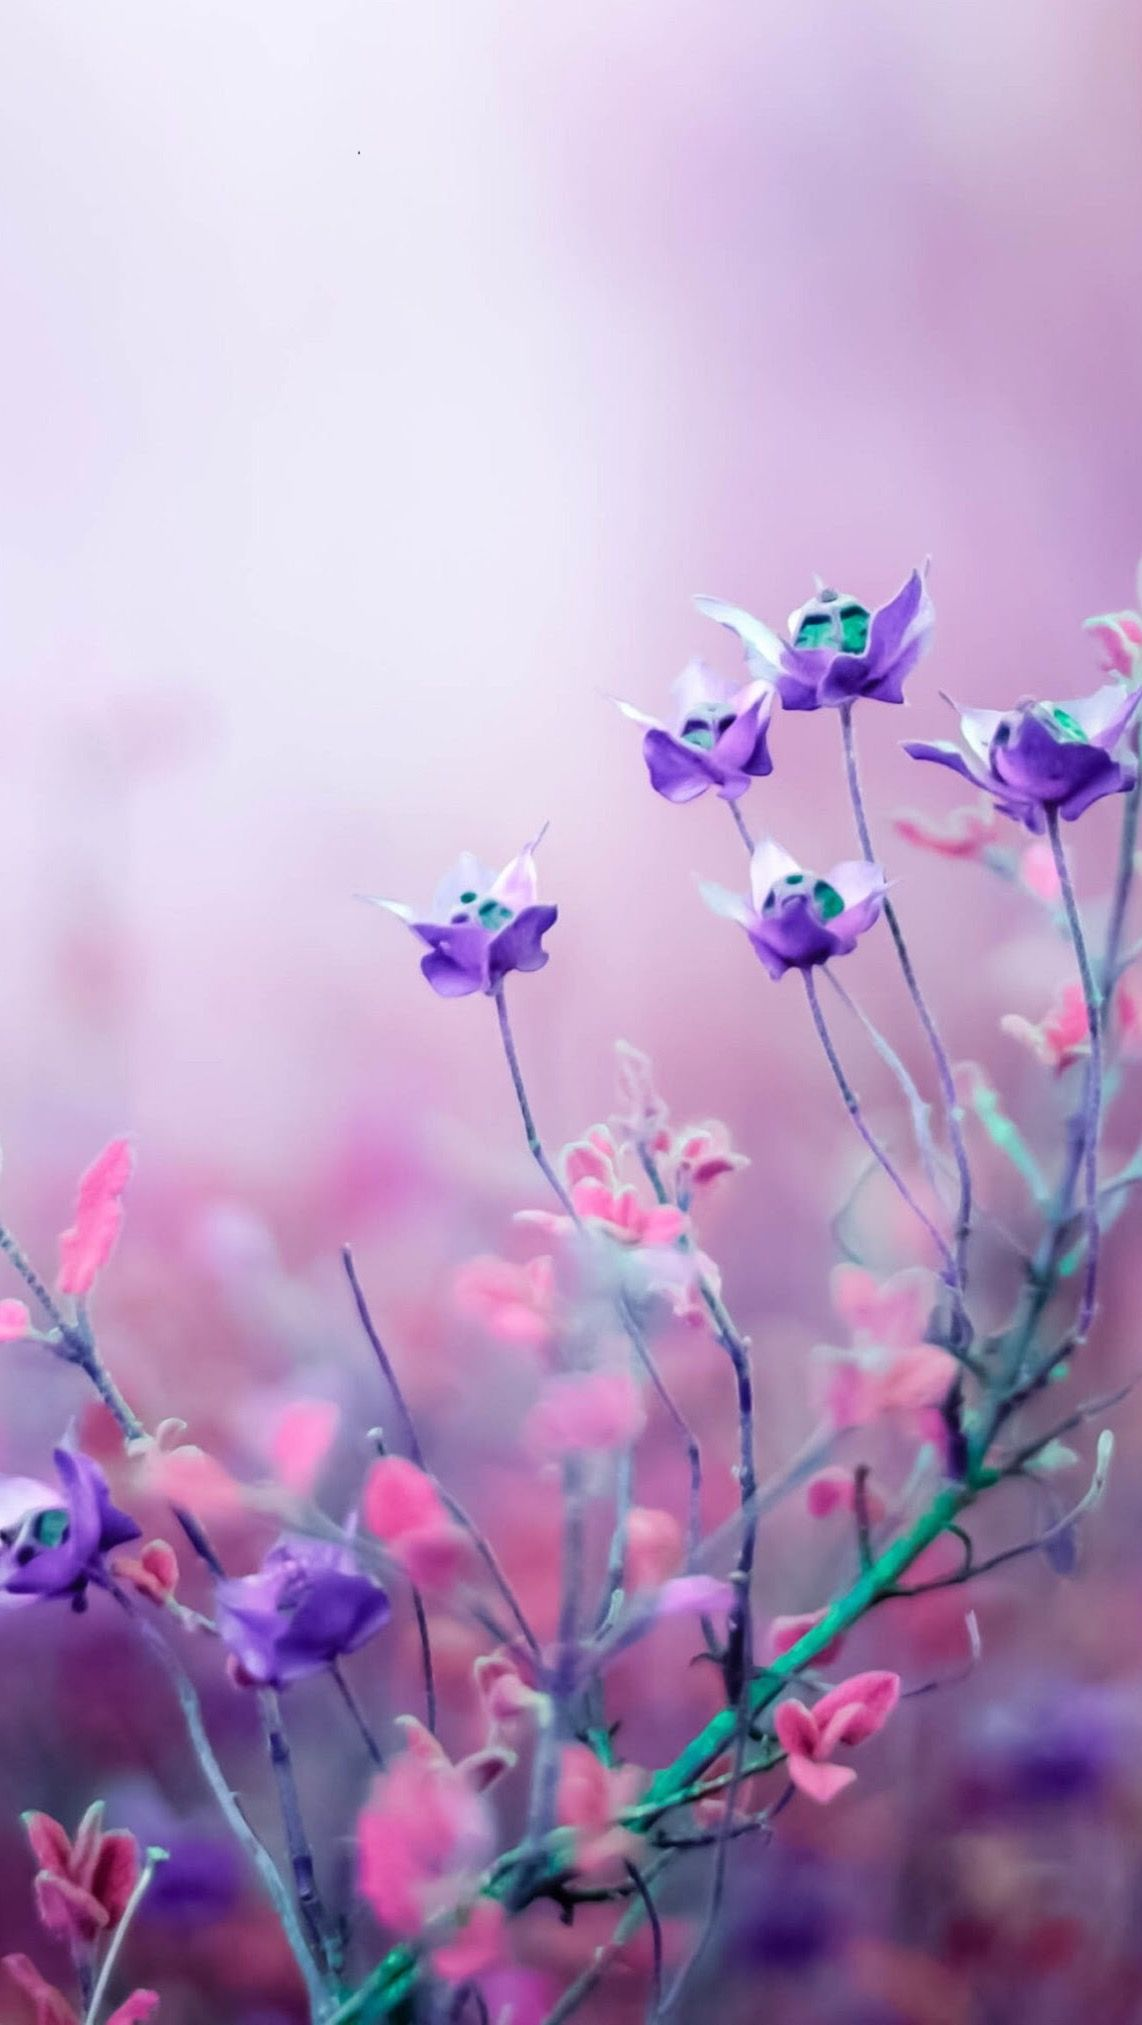 Hd Wallpaper Purple Flowers Wallpaper Free Flower Wallpaper Flower Wallpaper